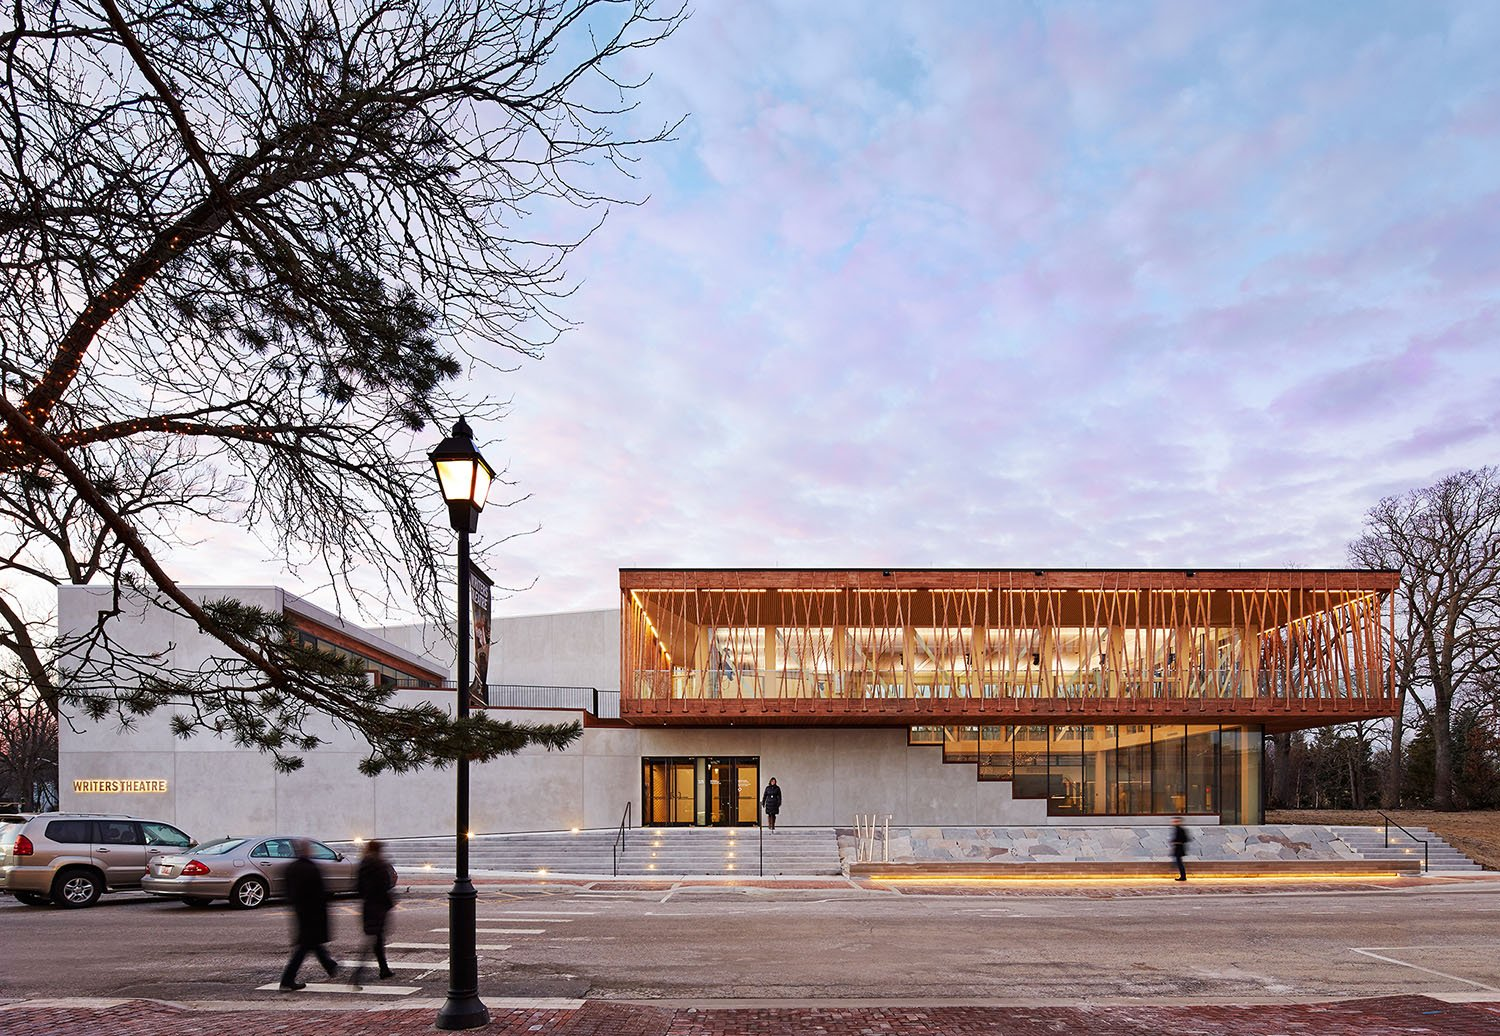 The design for Writers Theatre in Glencoe, Illinois, USA, creates exciting spaces that energize the daily life of its community.